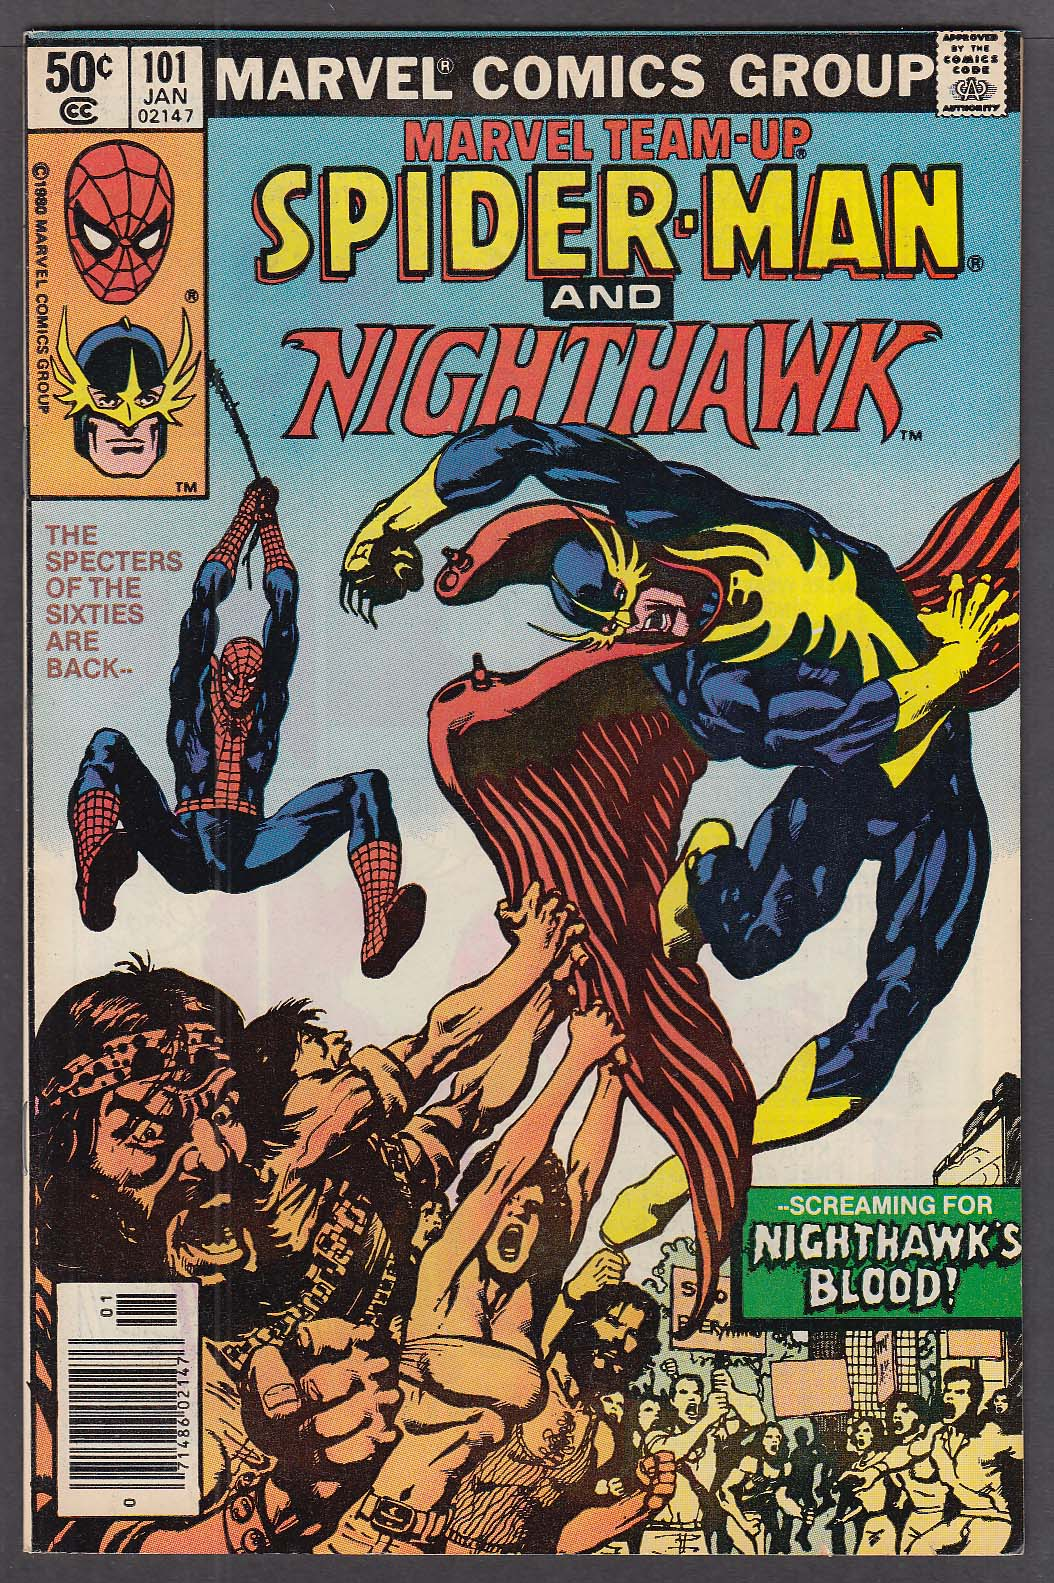 Image for MARVEL TEAM-UP #101 Spider-Man & Nighthawk comic book 1 1981